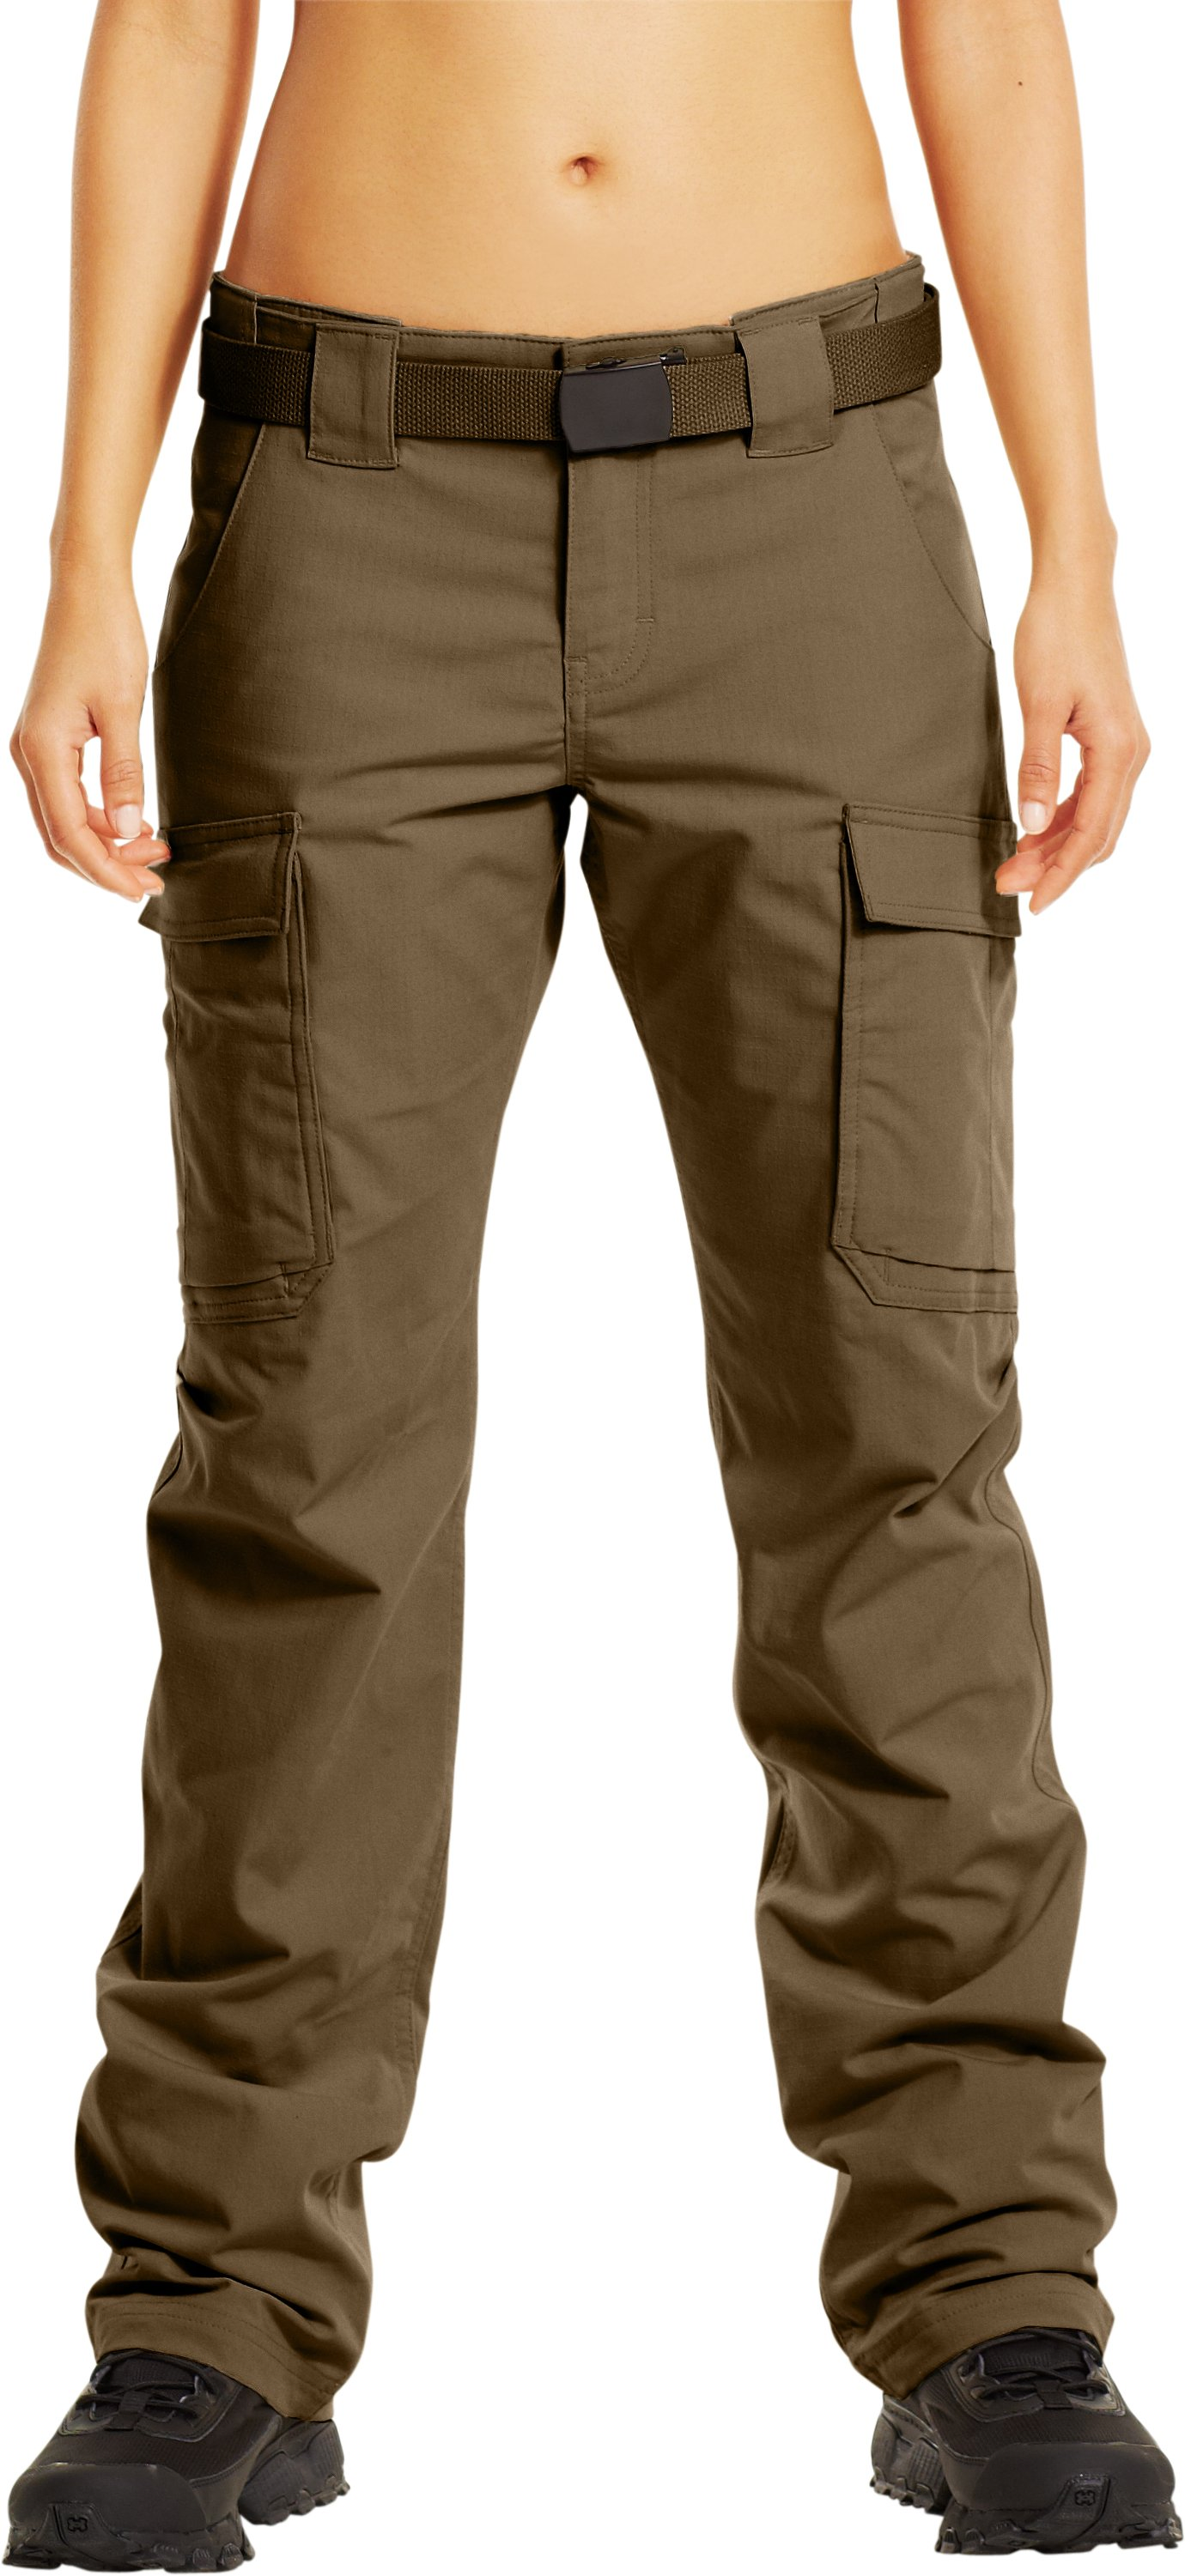 Women's Tactical Duty Pants, Coyote Brown, zoomed image